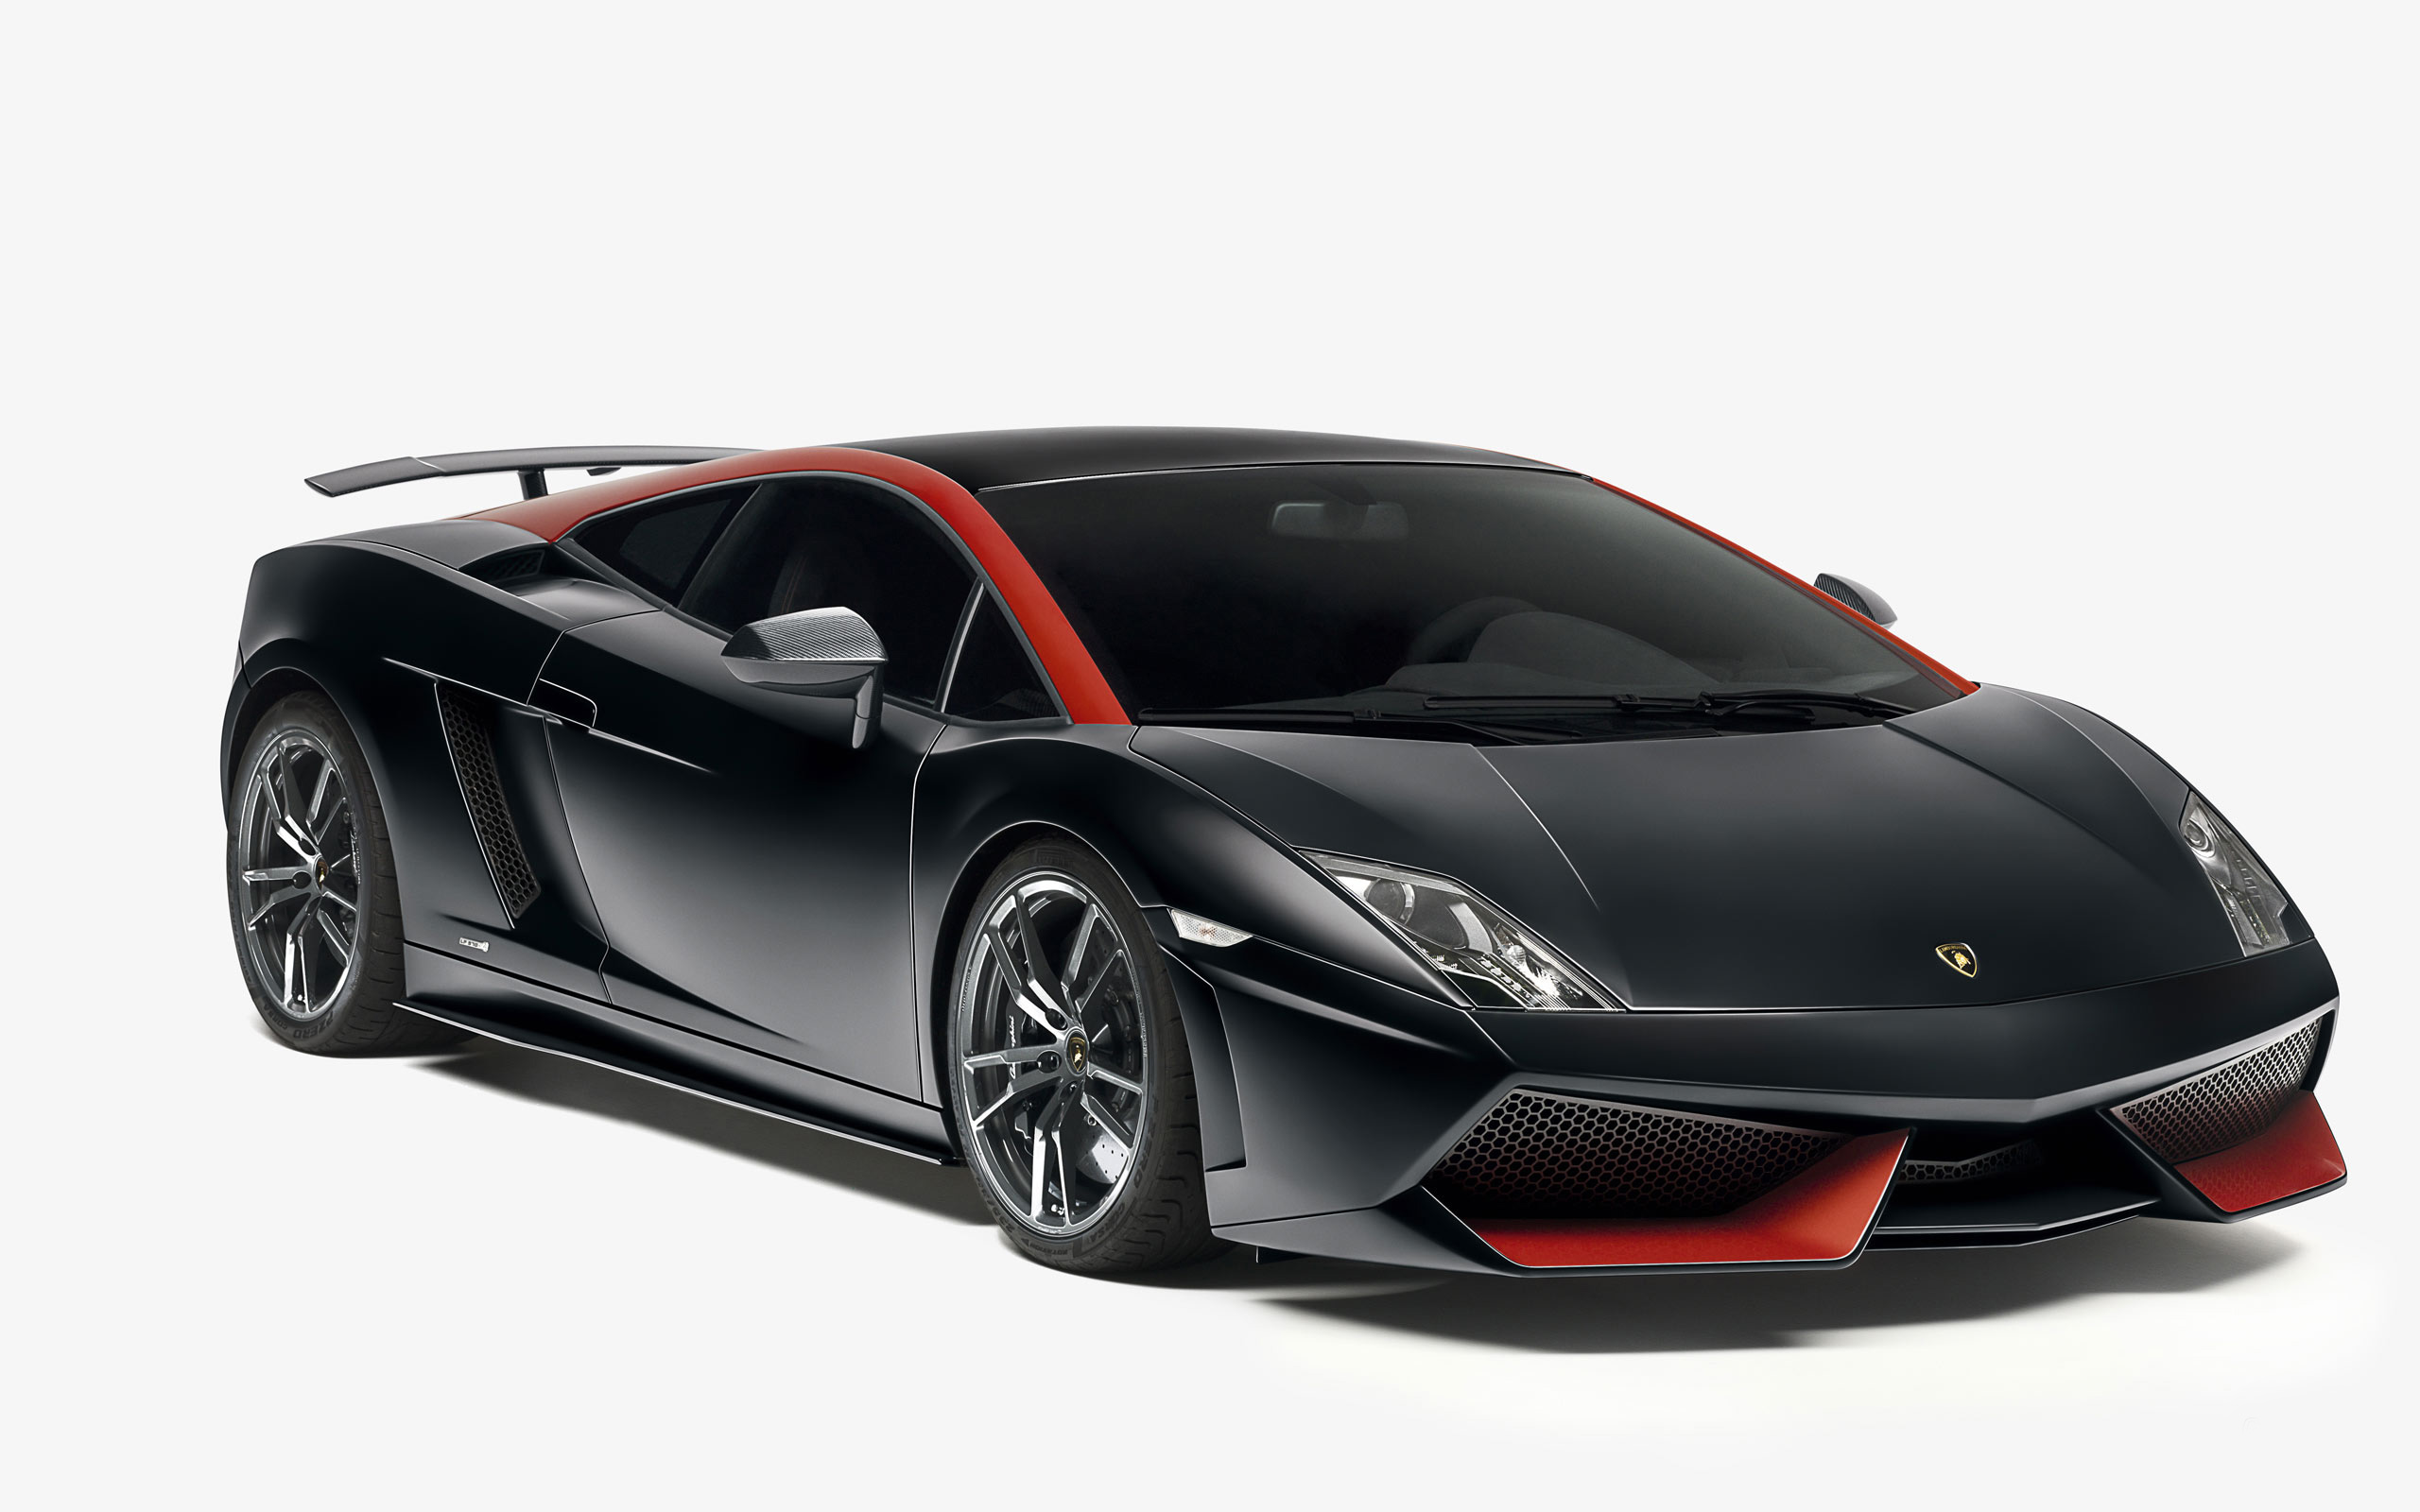 2013 Lamborghini LP570 4 Editioone Wallpaper HD Car Wallpapers 2560x1600